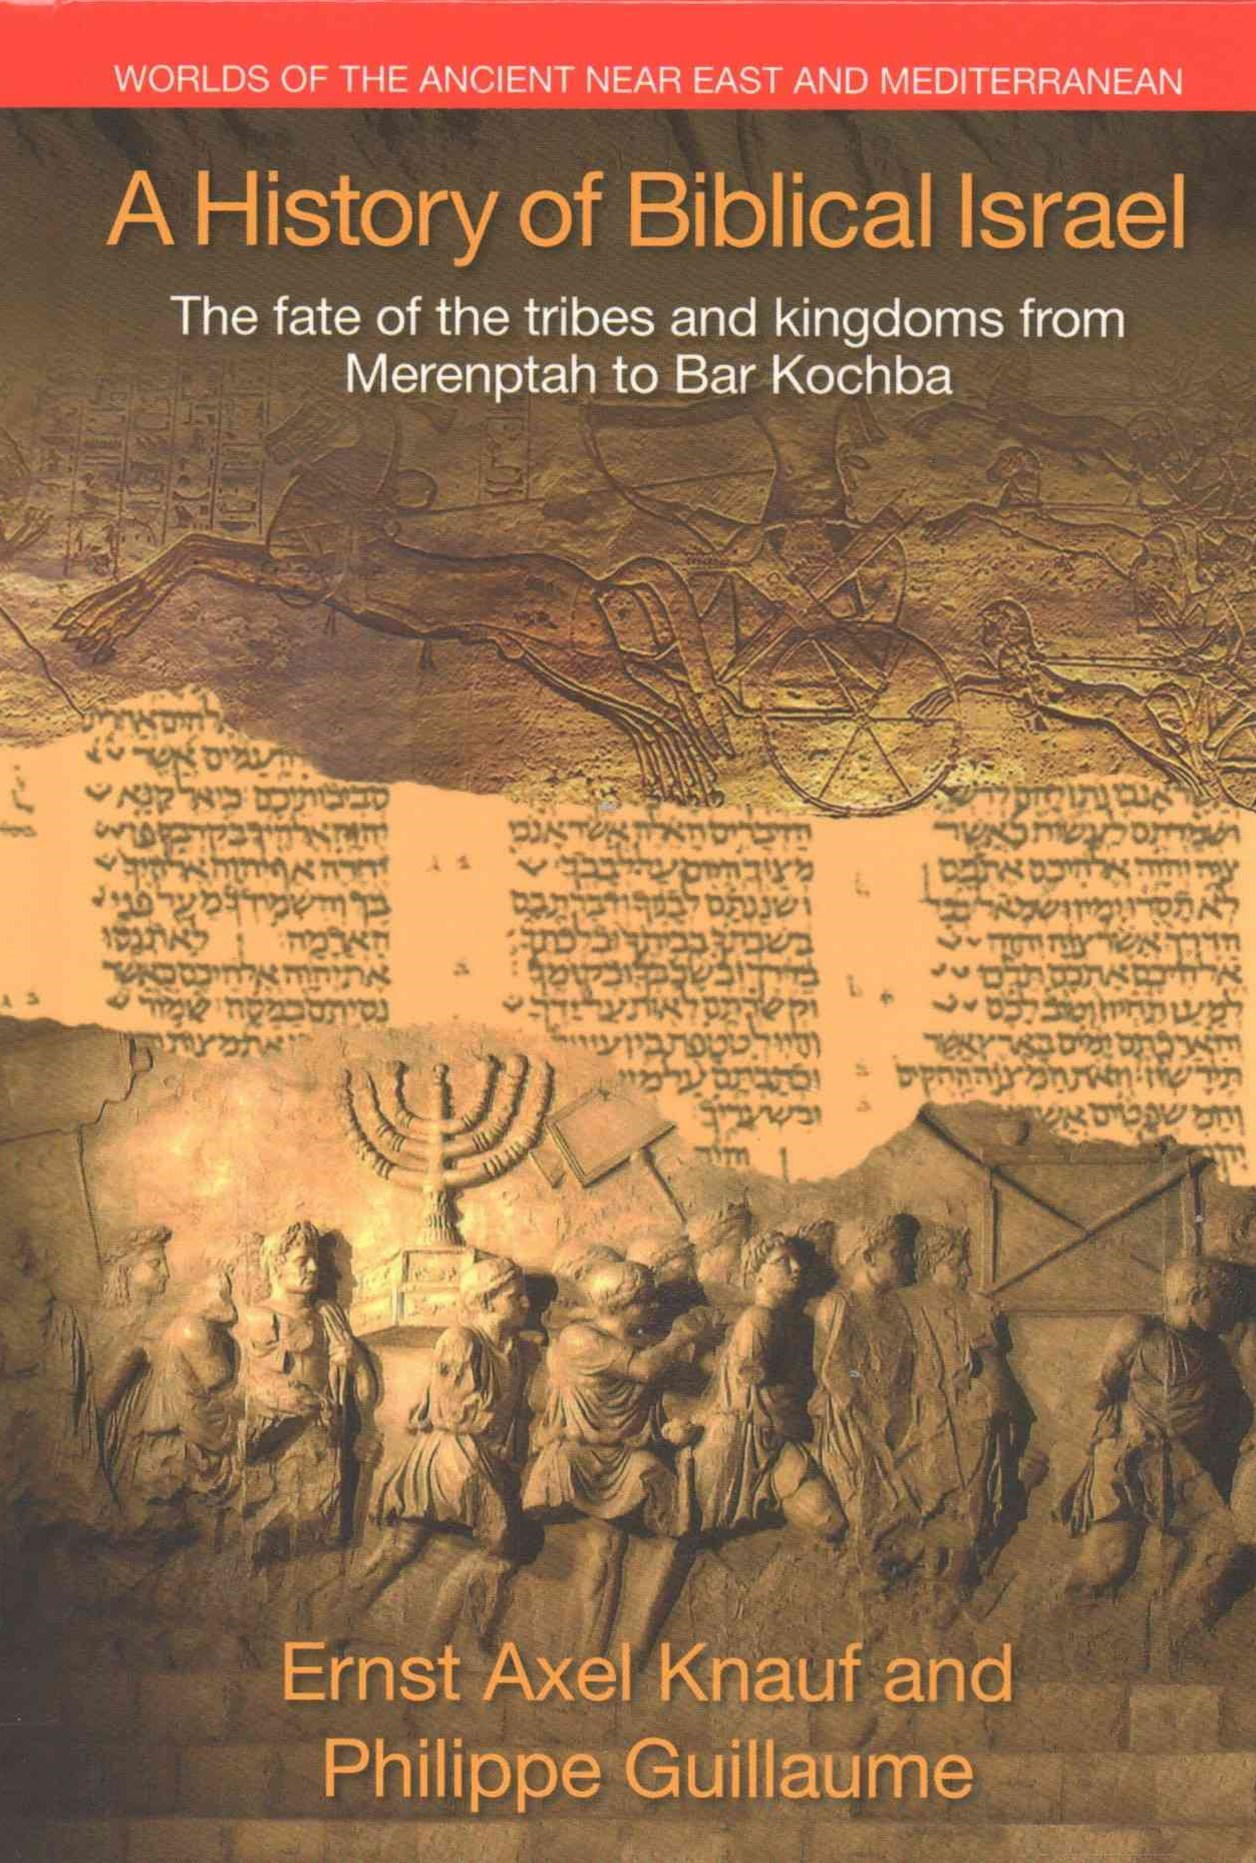 History of Biblical Israel